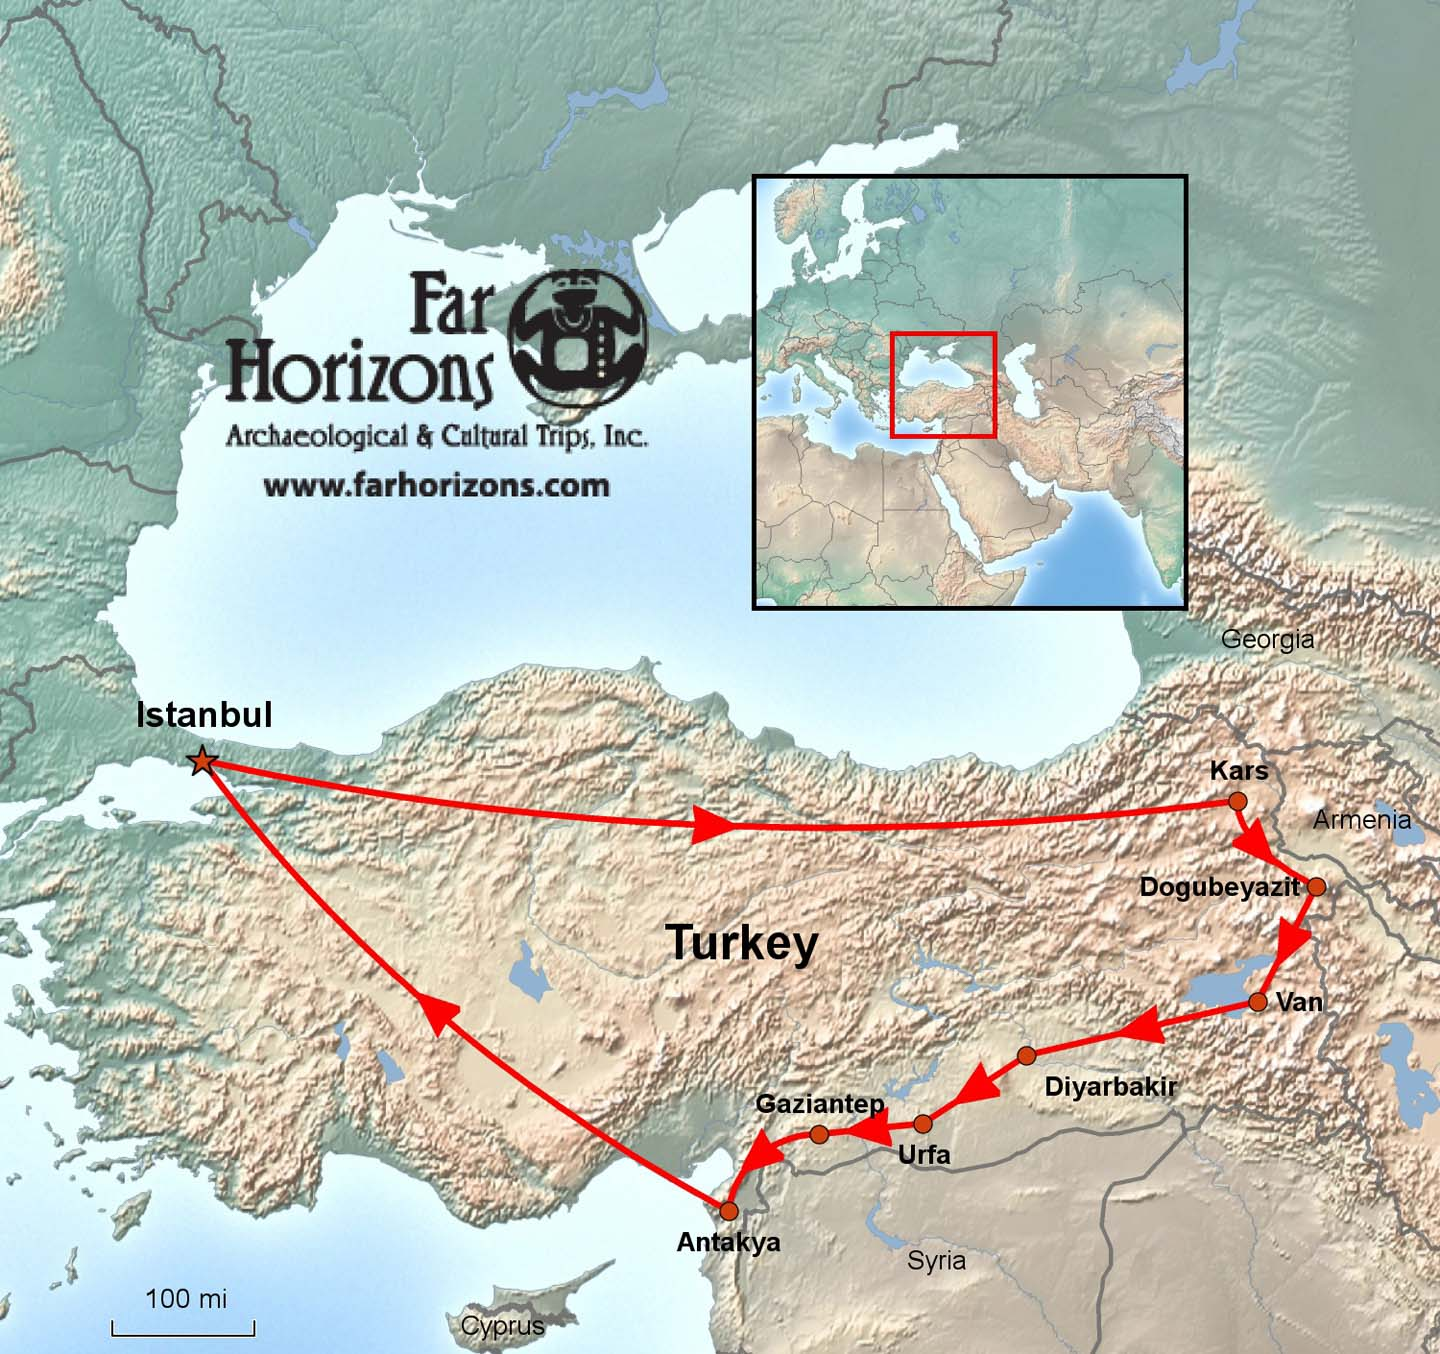 Eastern Turkey Tour Of The Lost Kingdoms